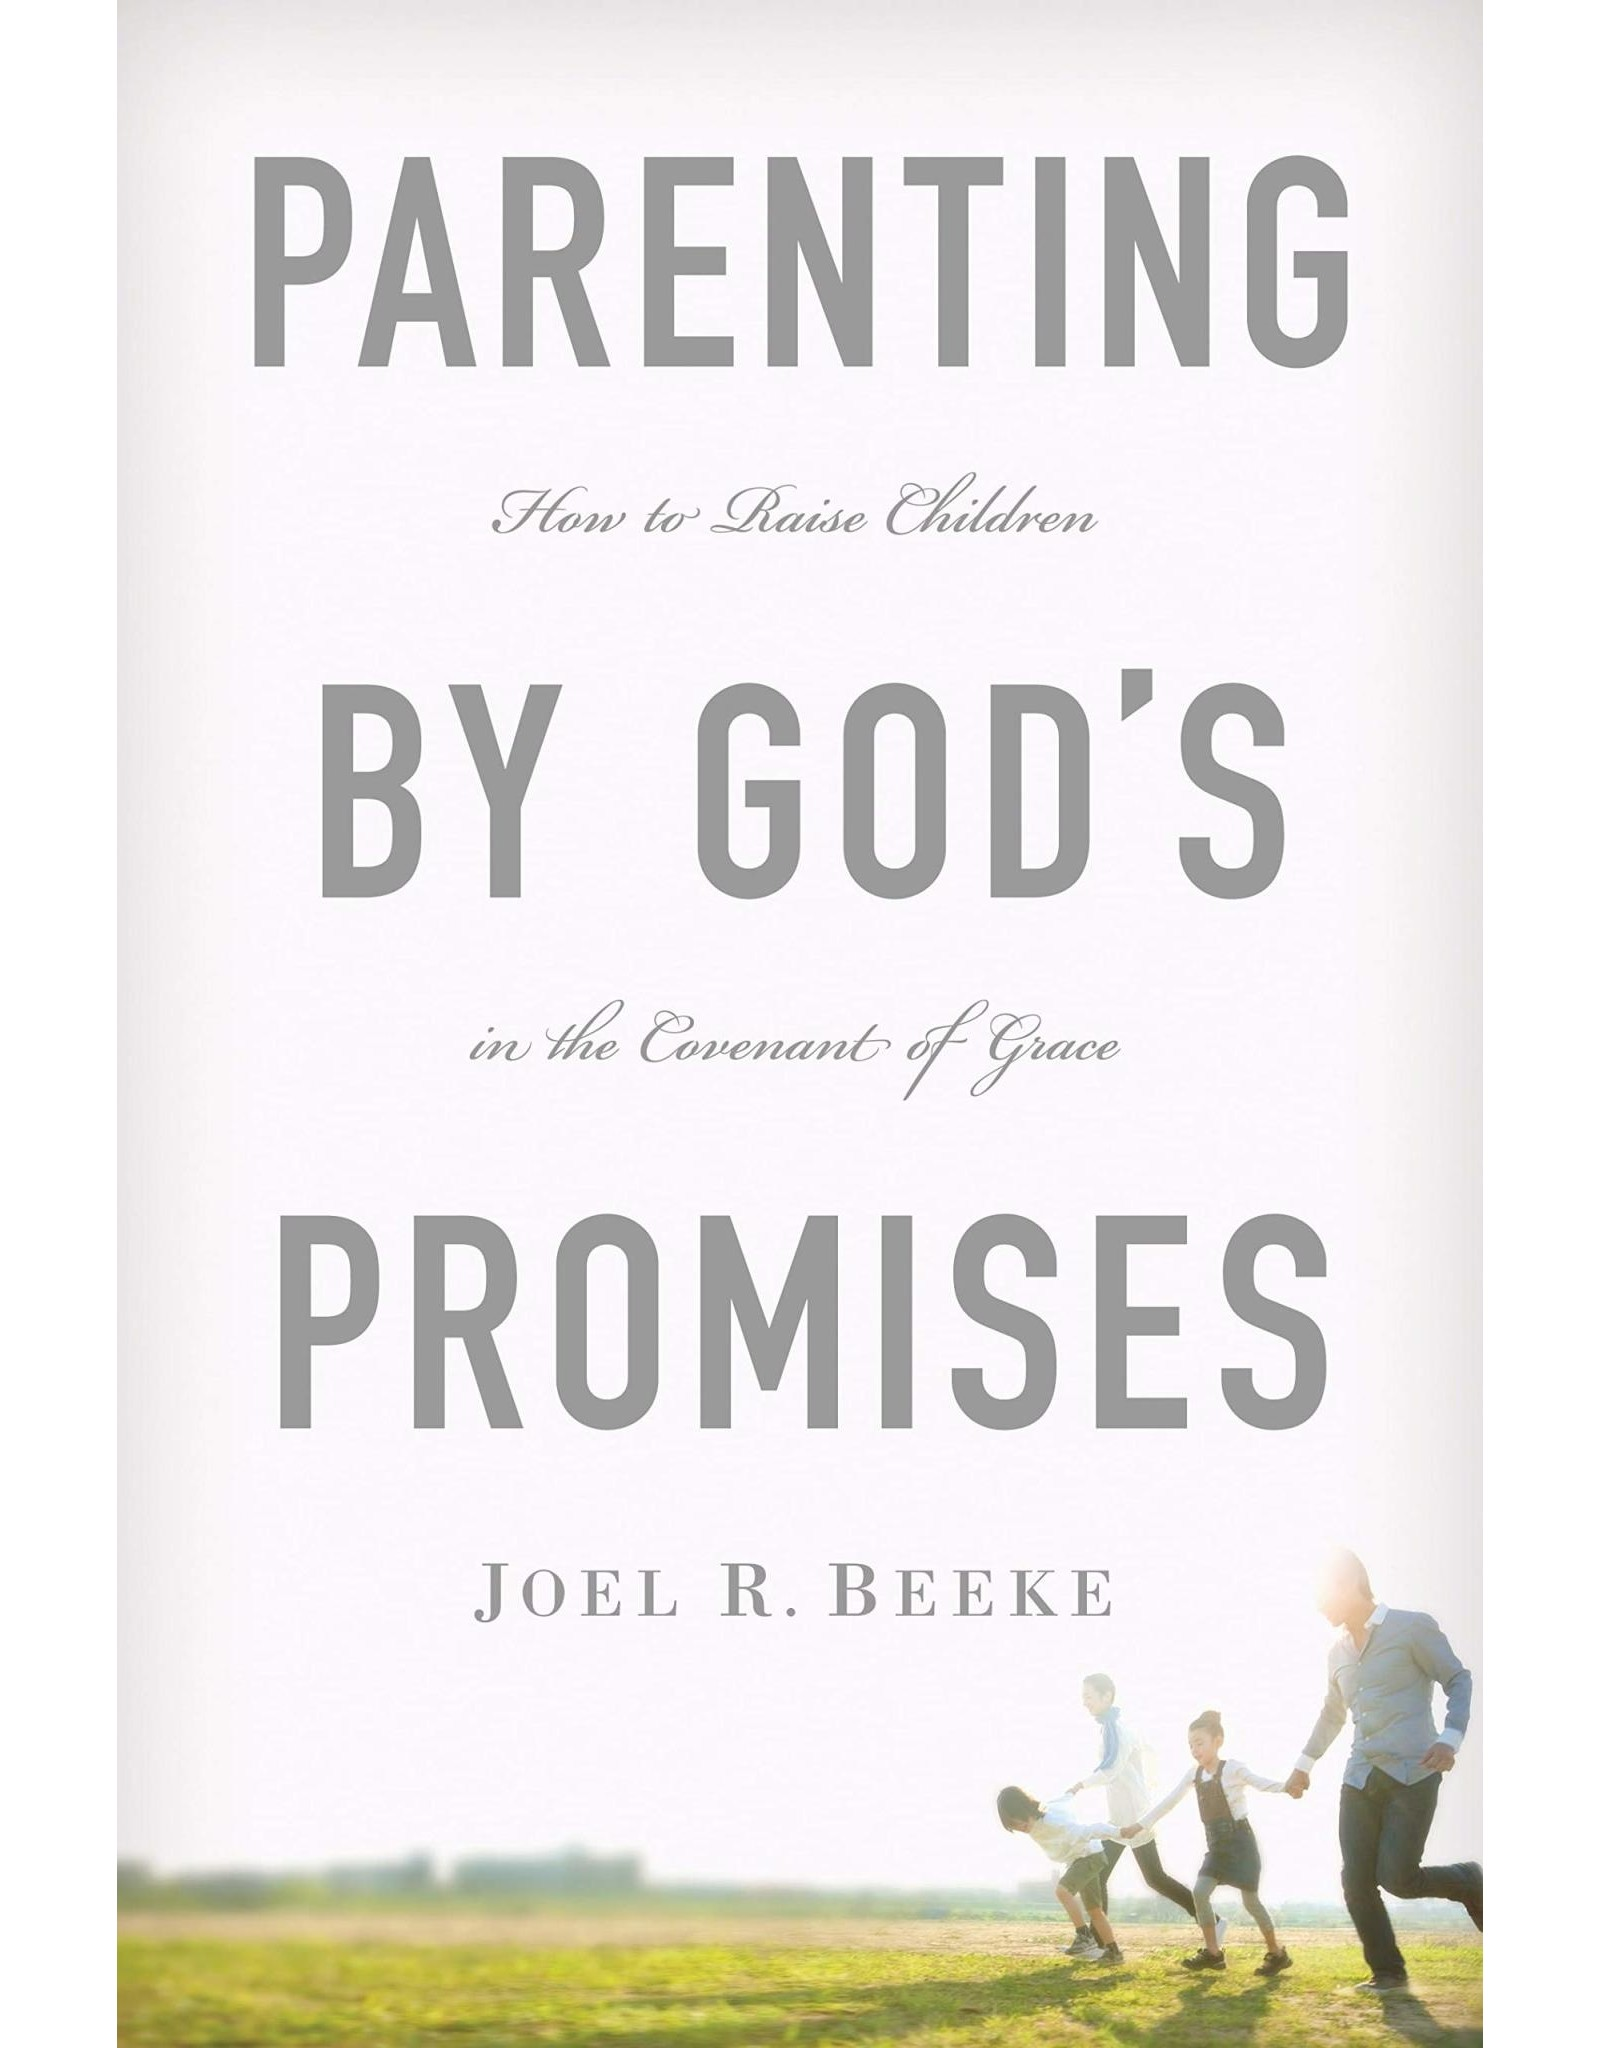 Ligonier / Reformation Trust Parenting by God's Promises